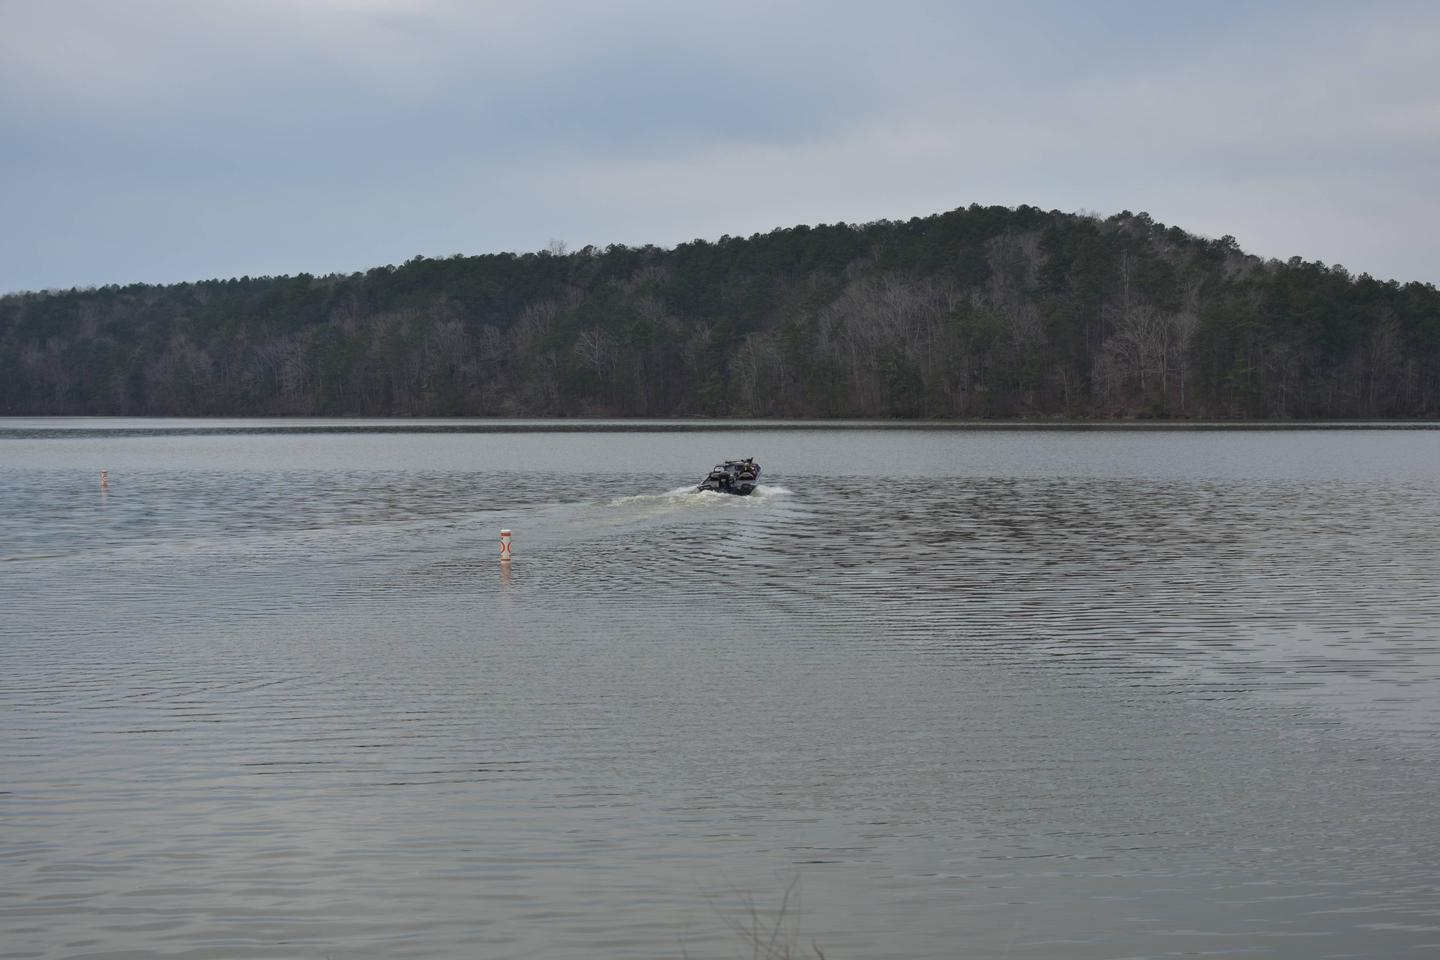 Clear Creek Public Boat Ramp - A man with his 2 best friends, his dog and his fishing boat, gone fishingClear Creek Public Boat Ramp - A man with his 2 best friends, his dog and his fishing boat, gone fishing March 1st, 2020